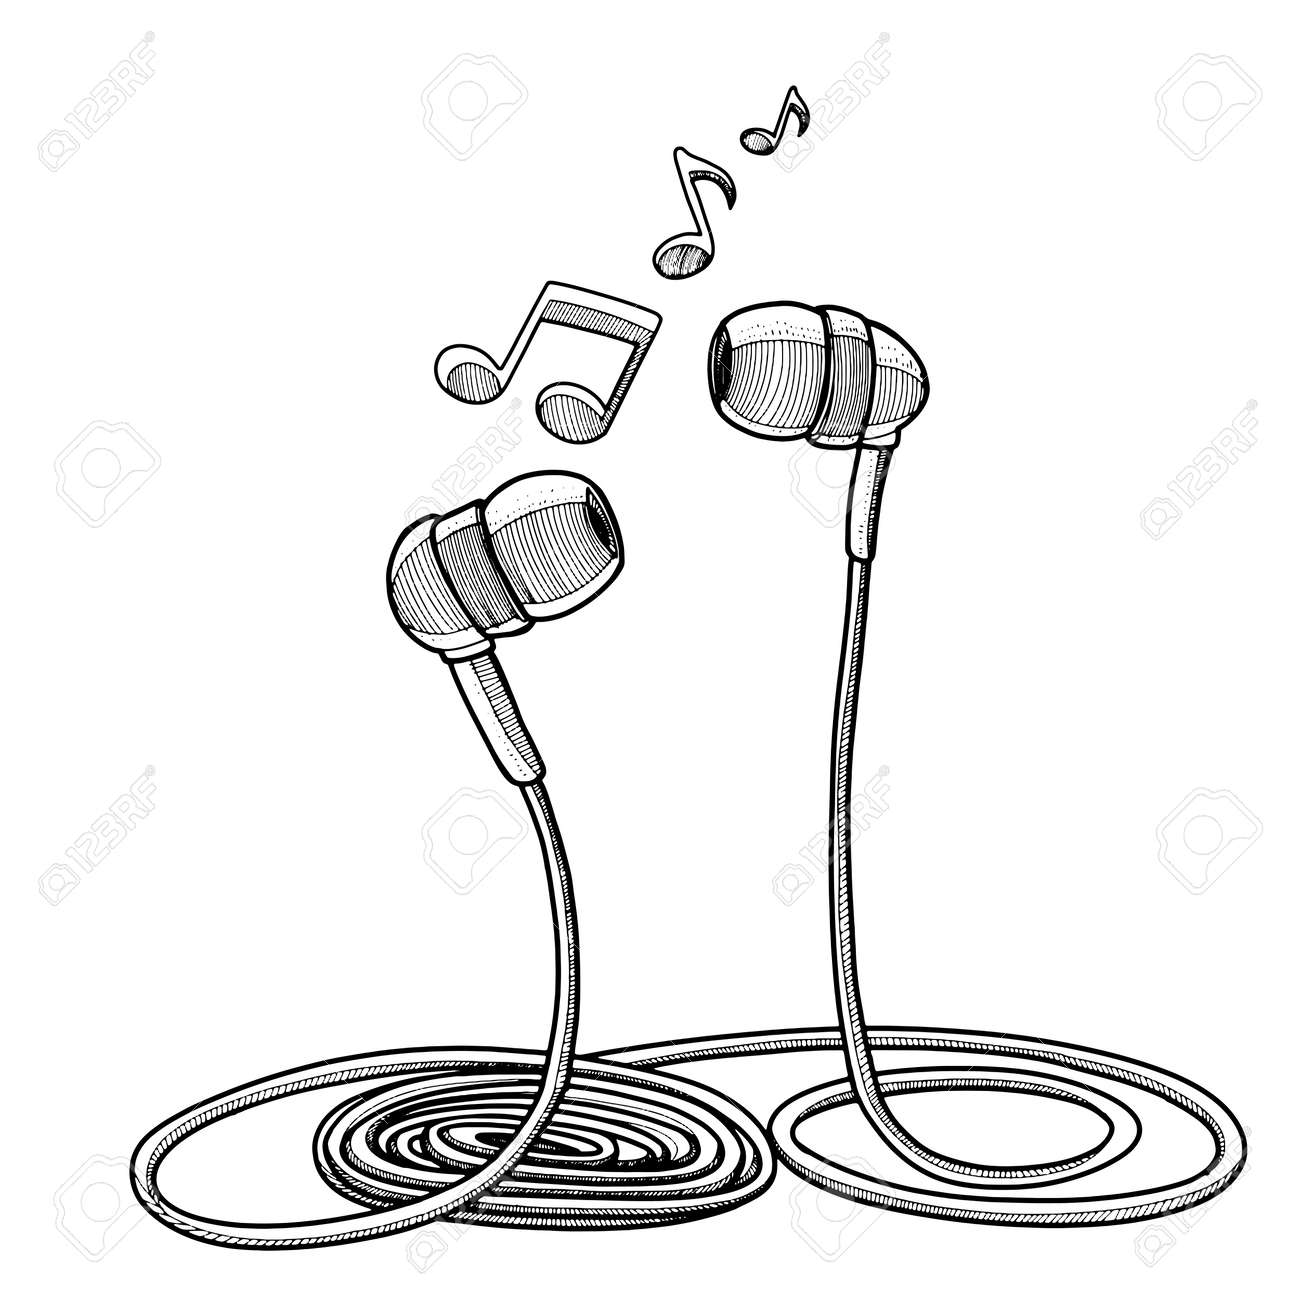 Headphones Doodle Sketch Style Vector Illustration With Musical